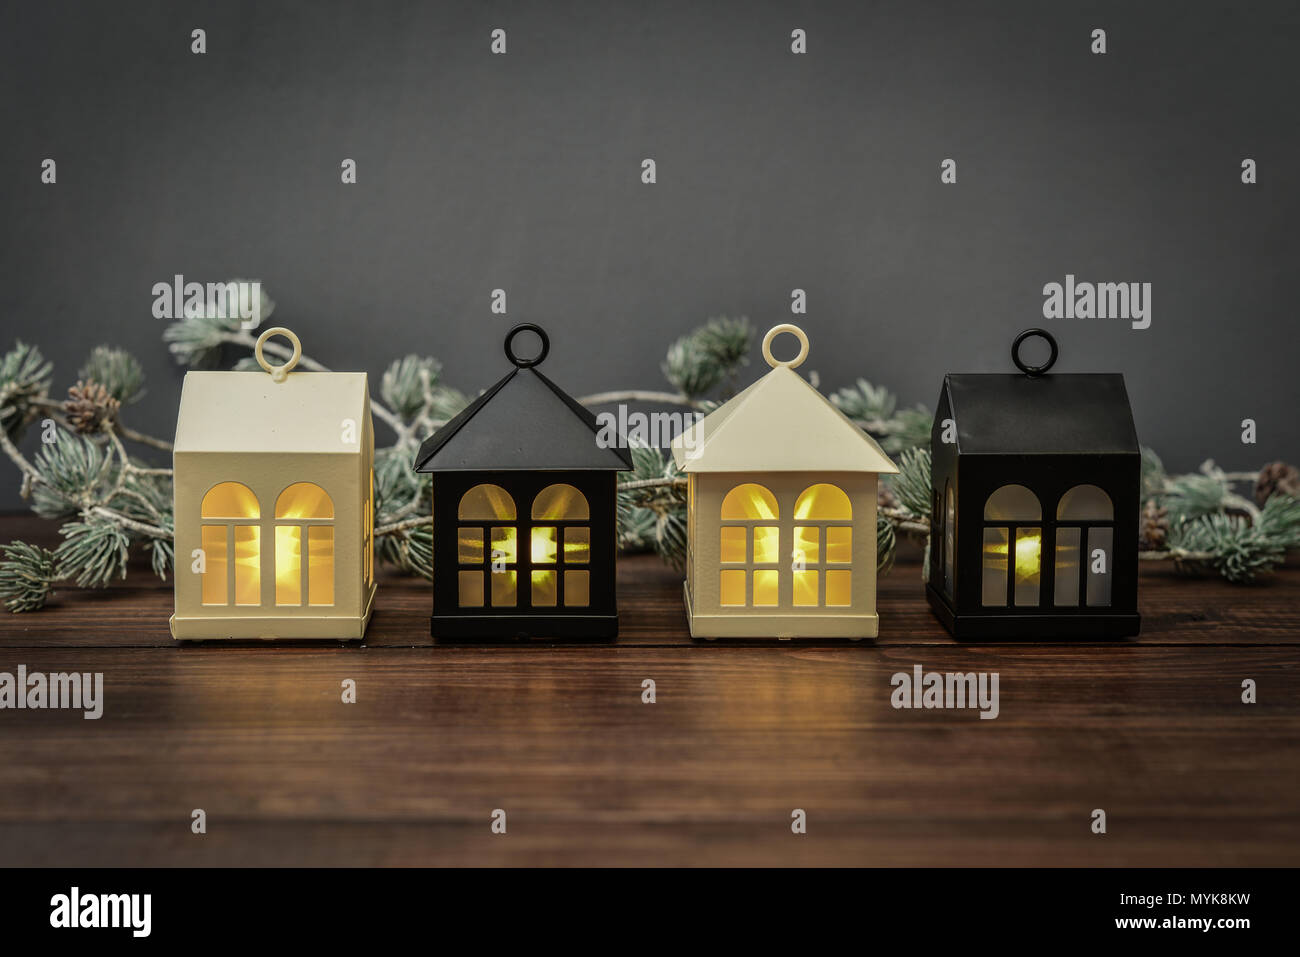 Row of decorative lanterns in shape of small houses christmas